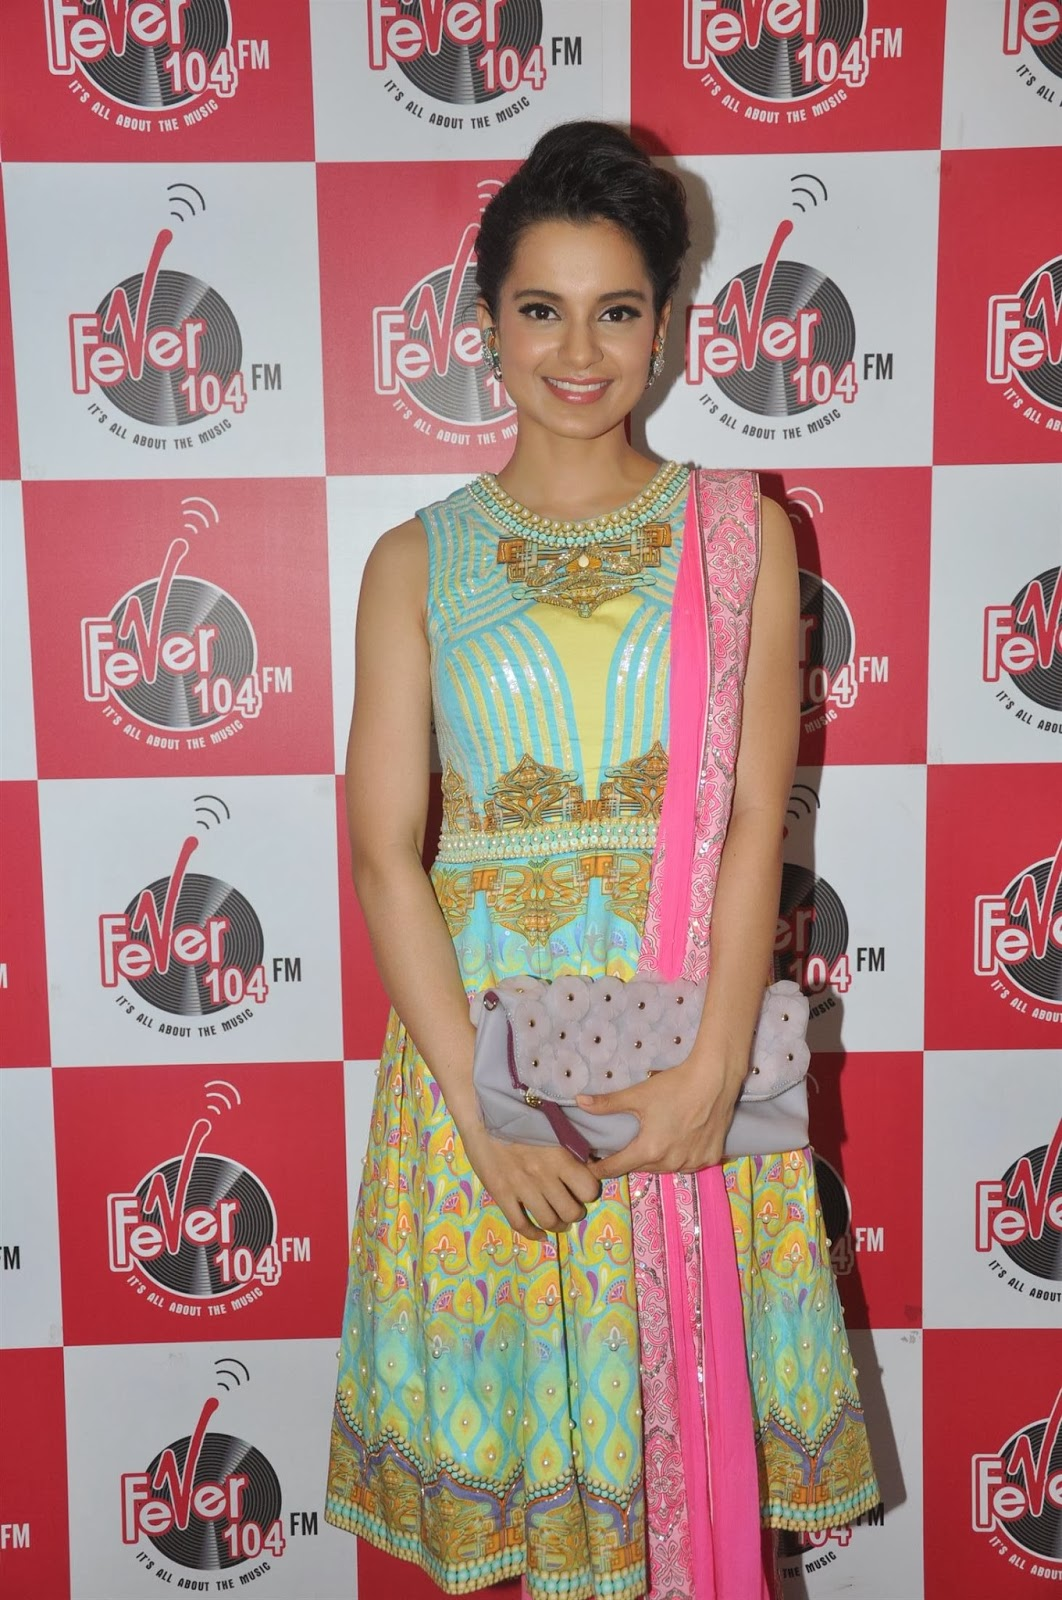 http://2.bp.blogspot.com/-npyko8oNl44/Uvs0q44Of5I/AAAAAAAAkOs/TSzaaBoosTo/s1600/Kangana-Ranaut-Promotes-Queen-Movie-At-Fever-104-FM-8.JPG